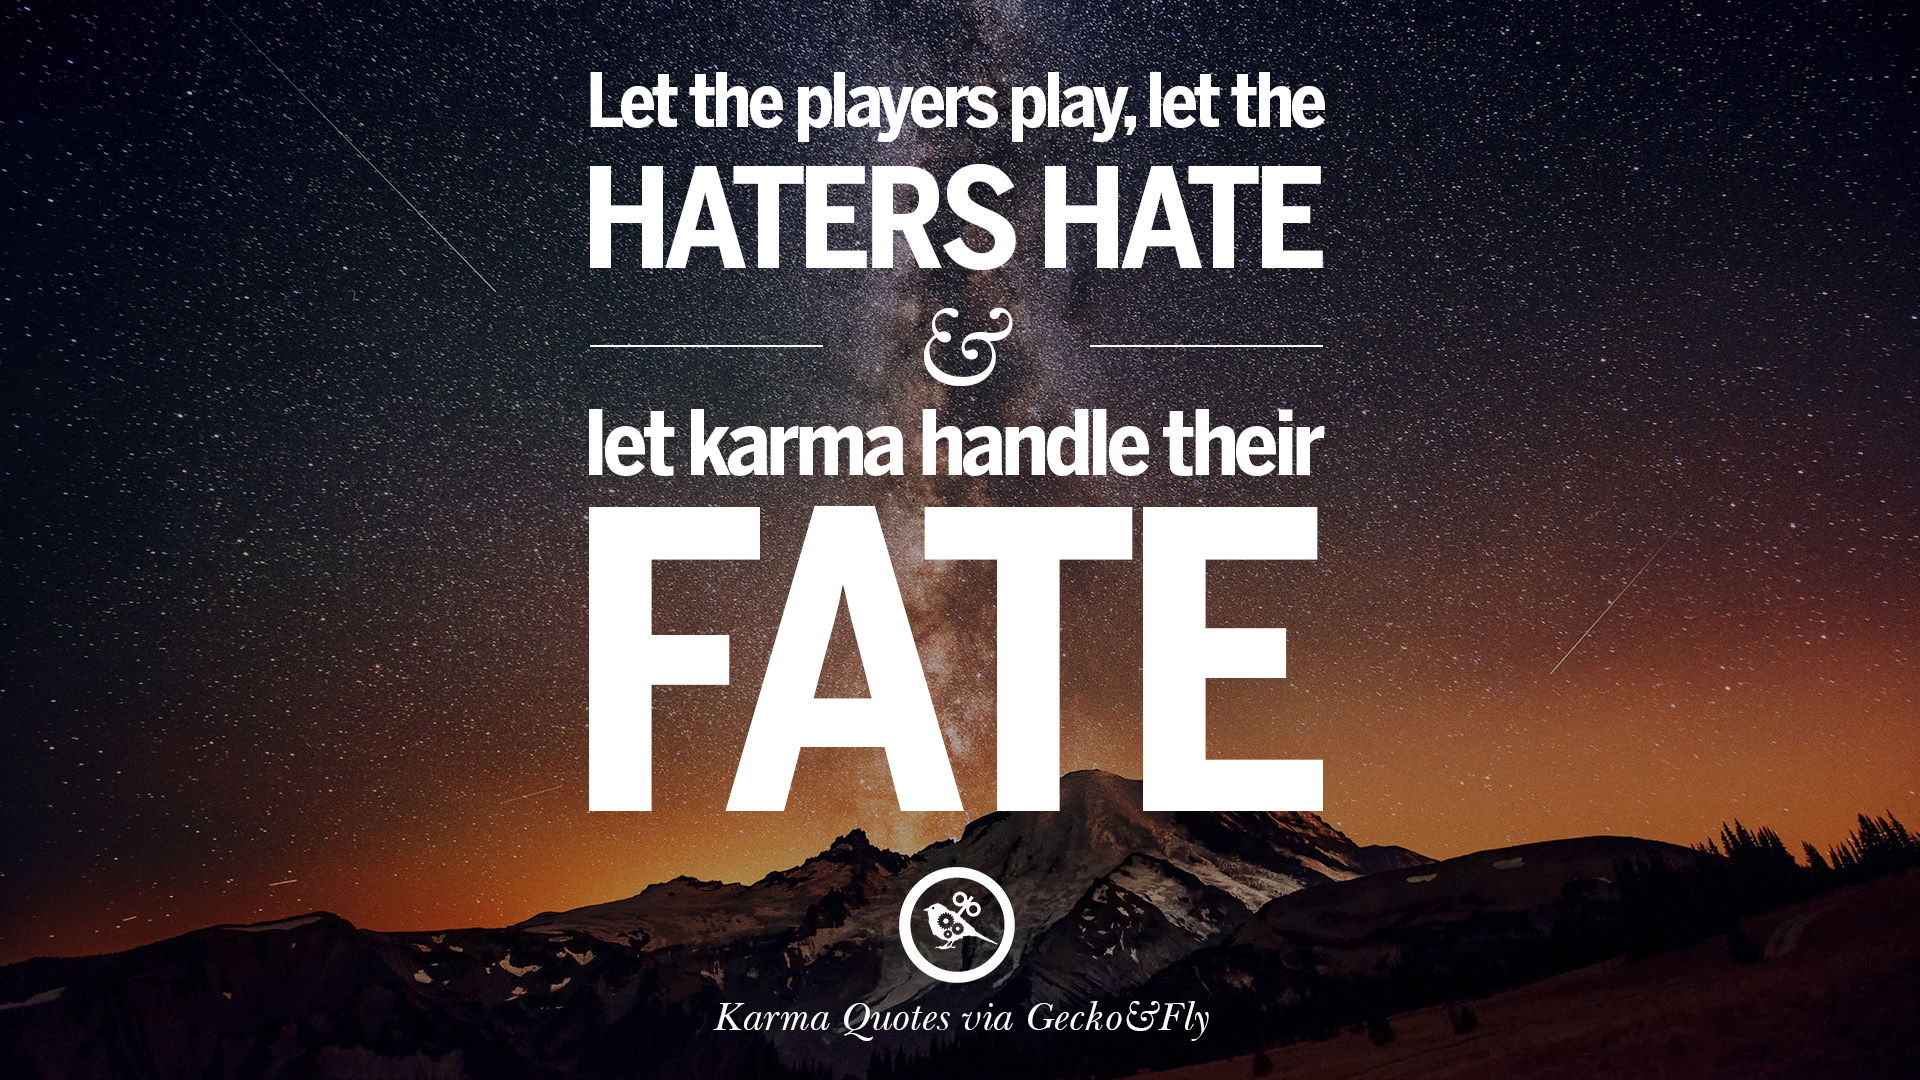 Let The Players Play, Let He Haters Hate And Let Karma Handle Their Fate.